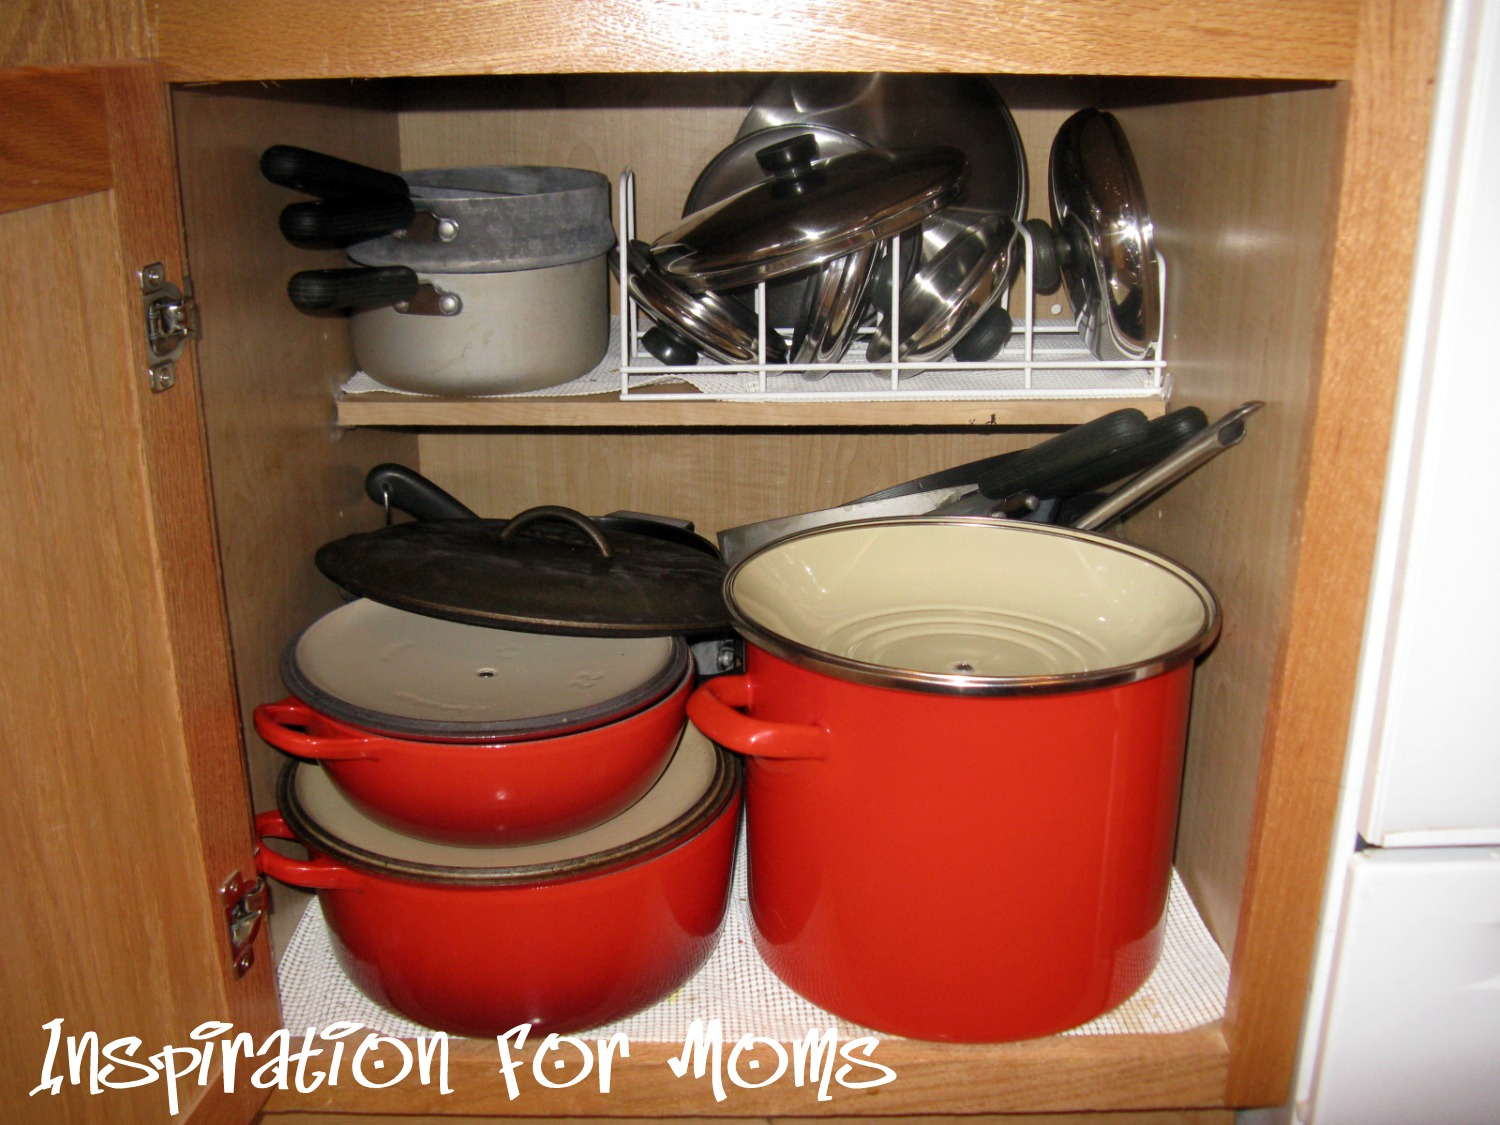 How To Arrange Pots And Pans In Kitchen Turquoise Rugs 21 Days A Clean Organized Home Day 20 Organizing